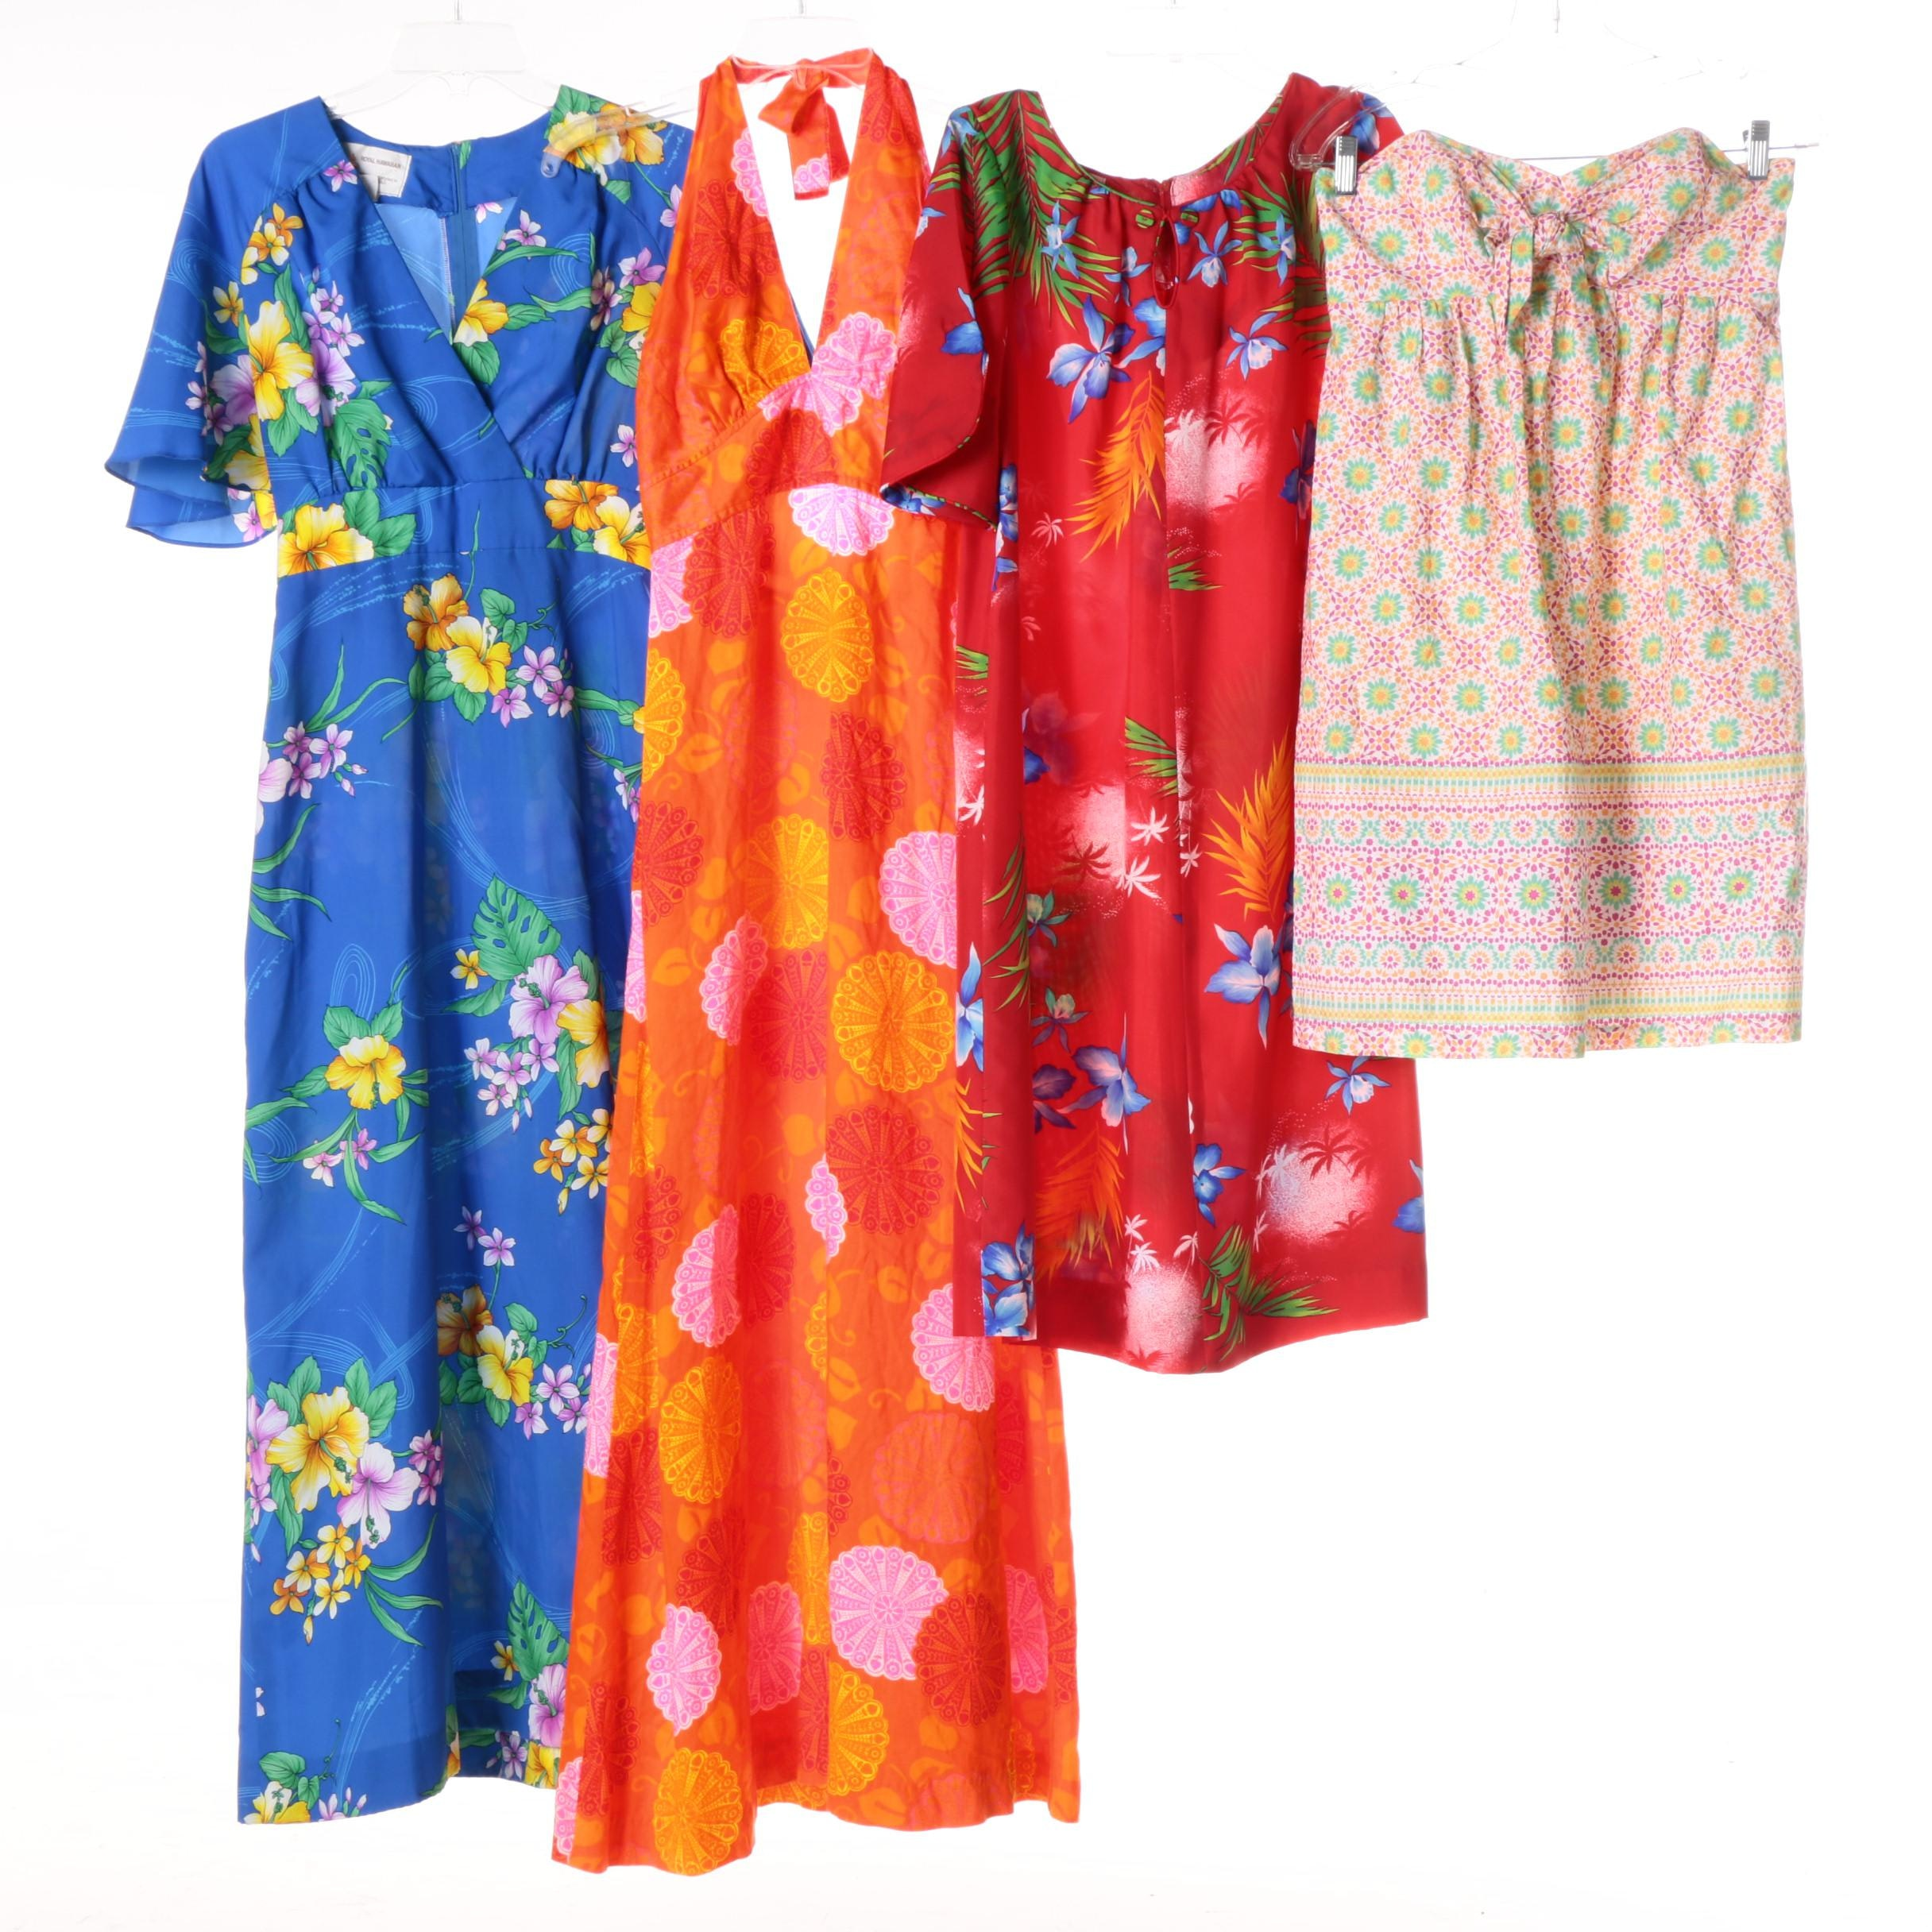 Women's Floral Dresses Including Royal Hawaiian